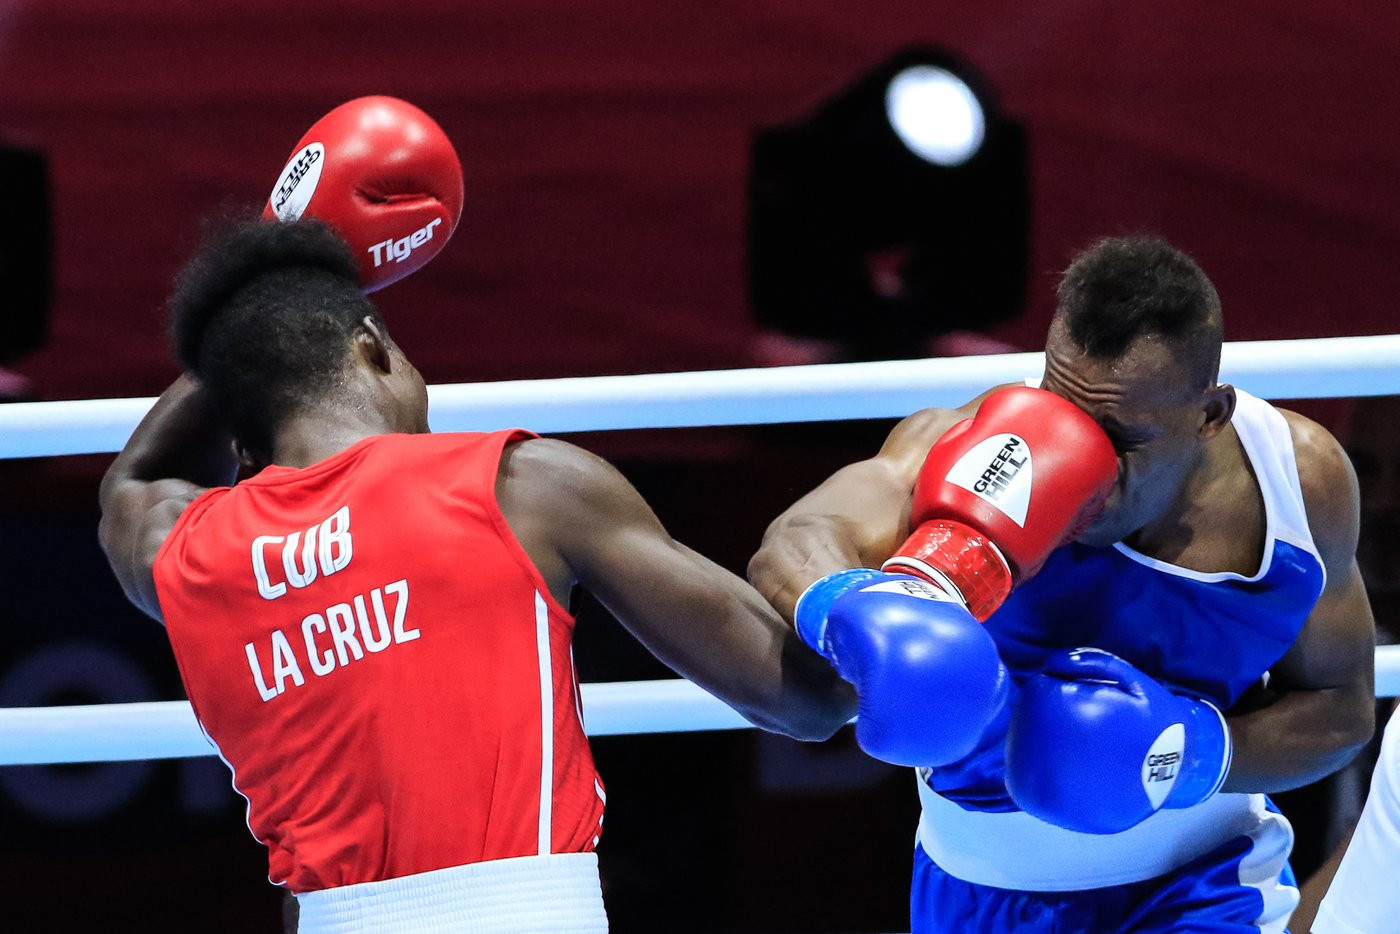 Cuba's four-time world champion, Julio La Cruz, won his opening light heavyweight bout at the AIBA World Championships ©Yekaterinburg 2019